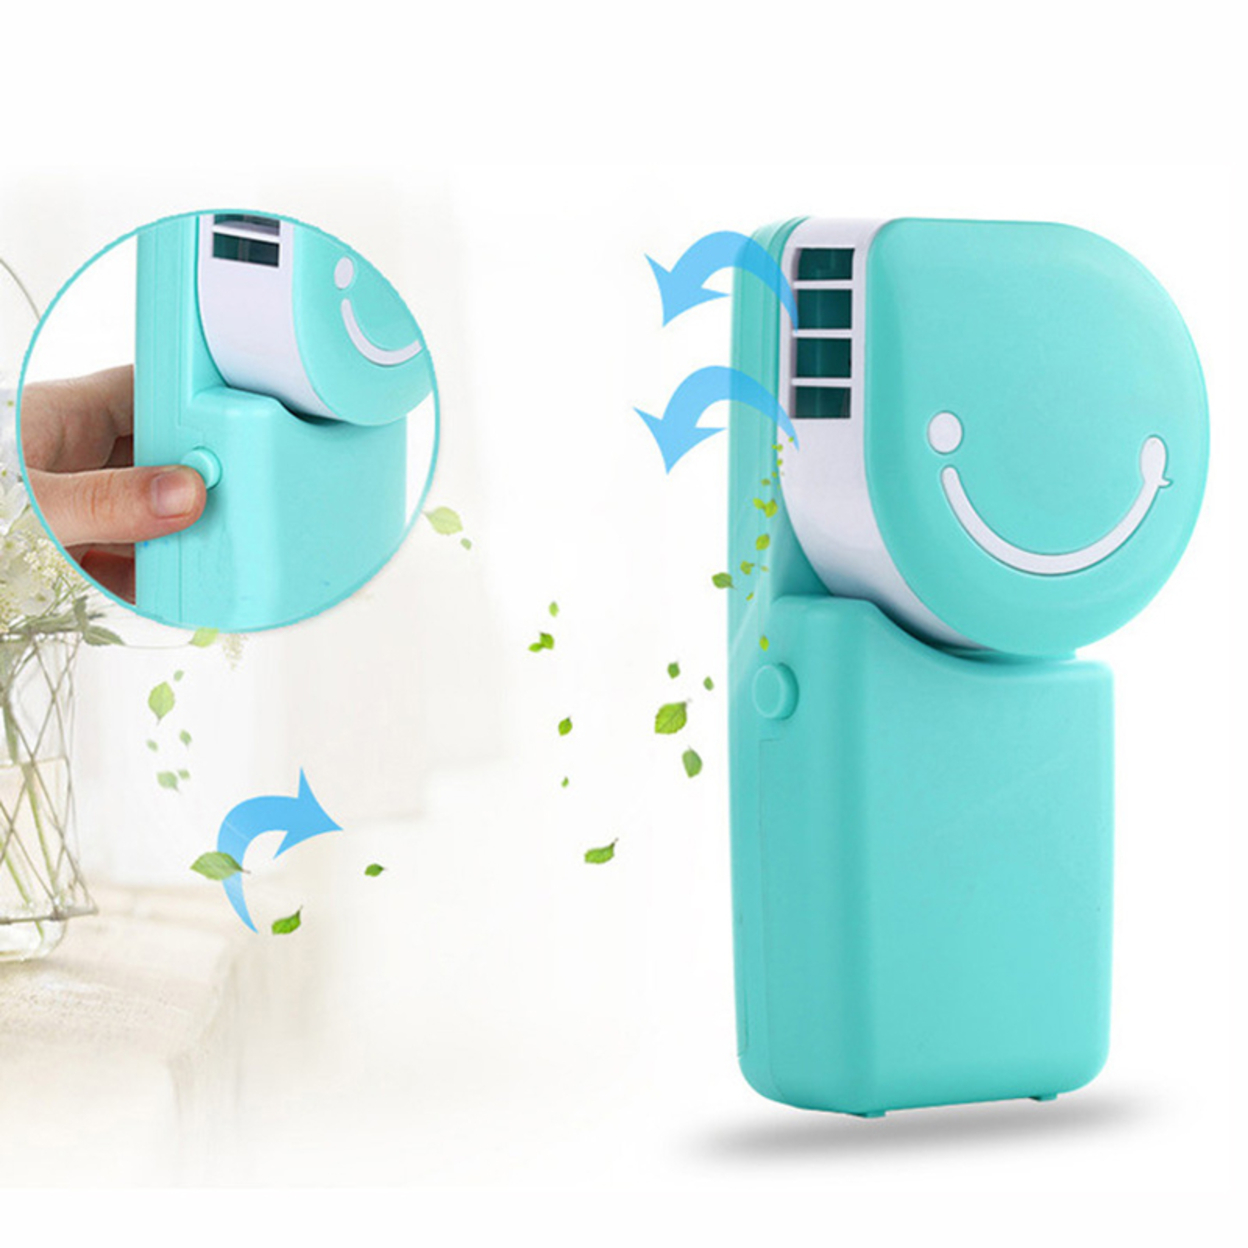 Hand Held Portable Air Conditioner in 3 Colors 58b65355469fe254a03116cc